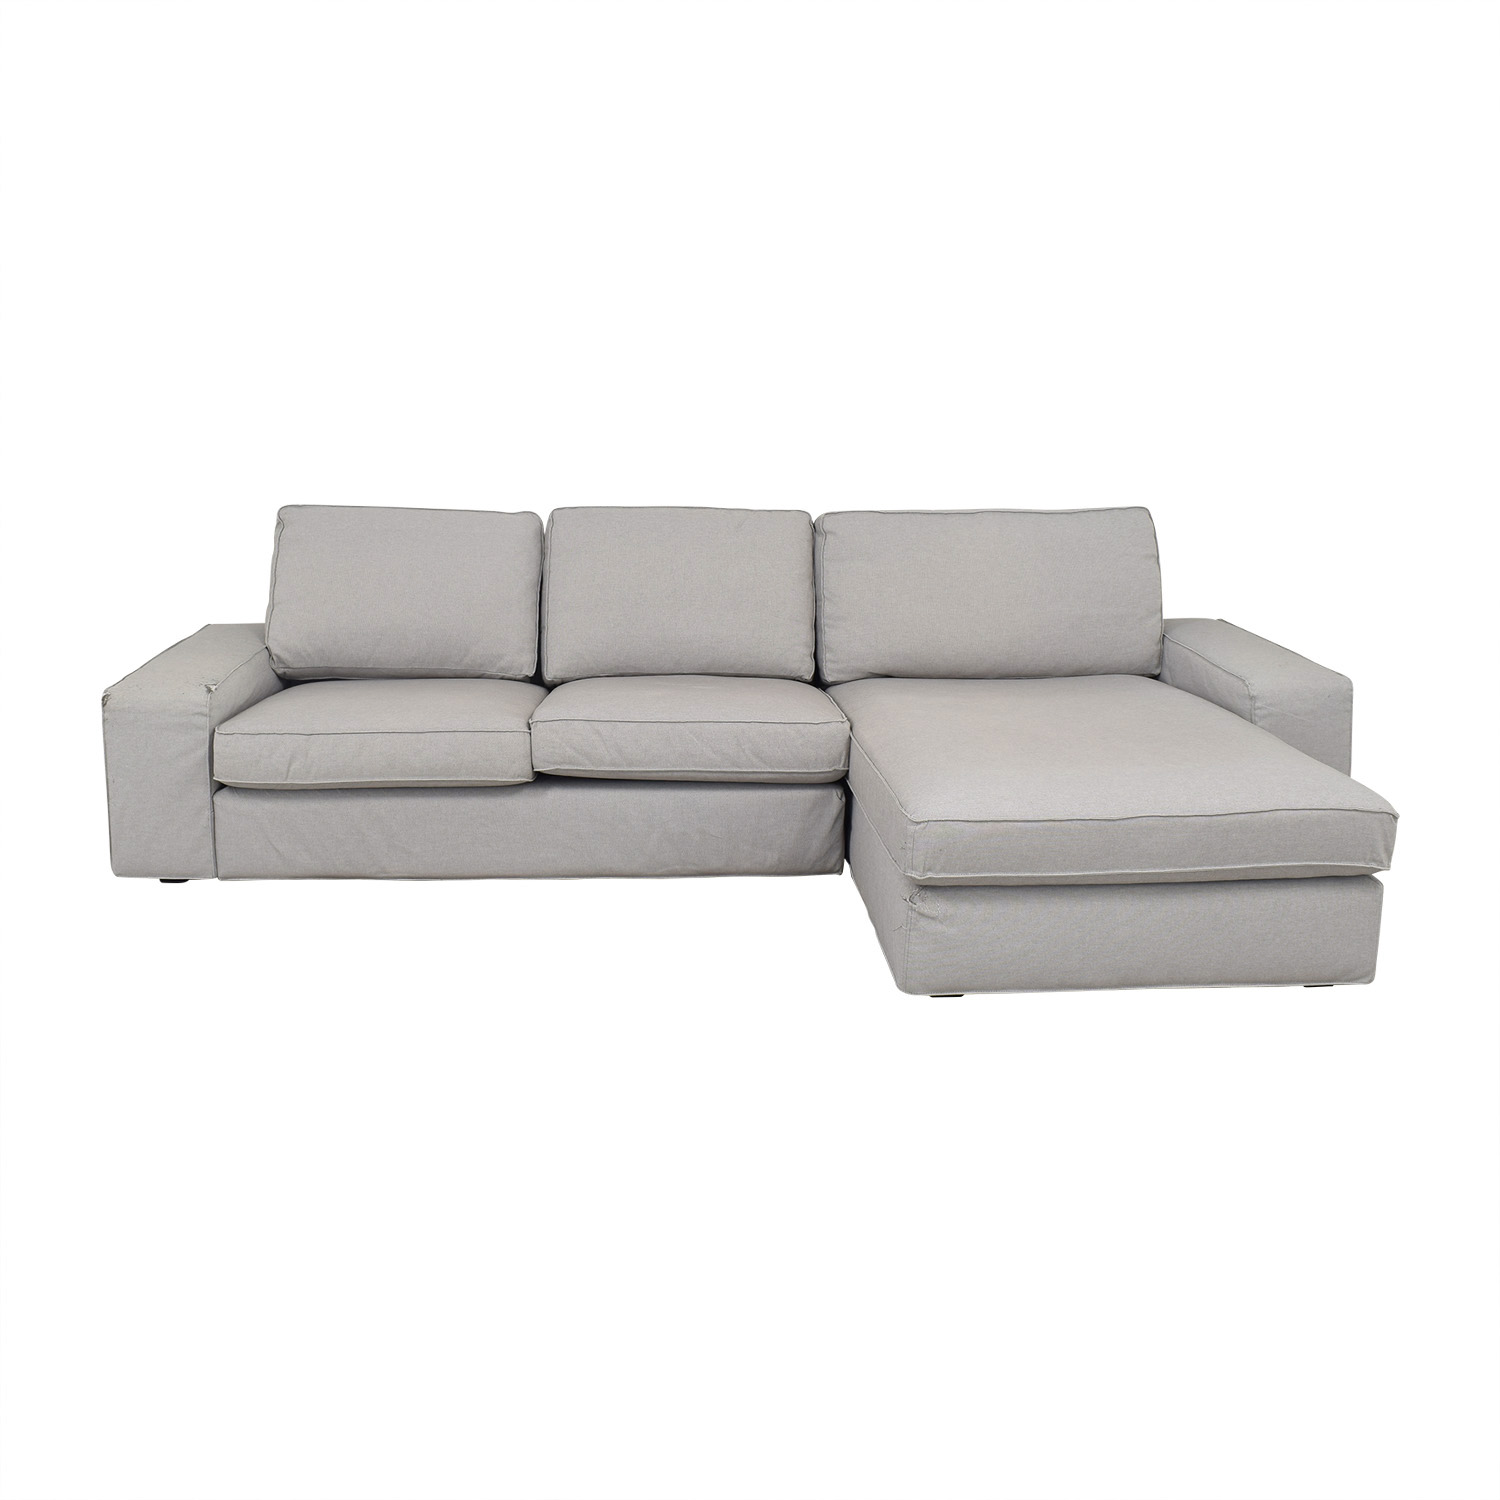 IKEA IKEA KIVIK Sofa Orrsta Chaise coupon